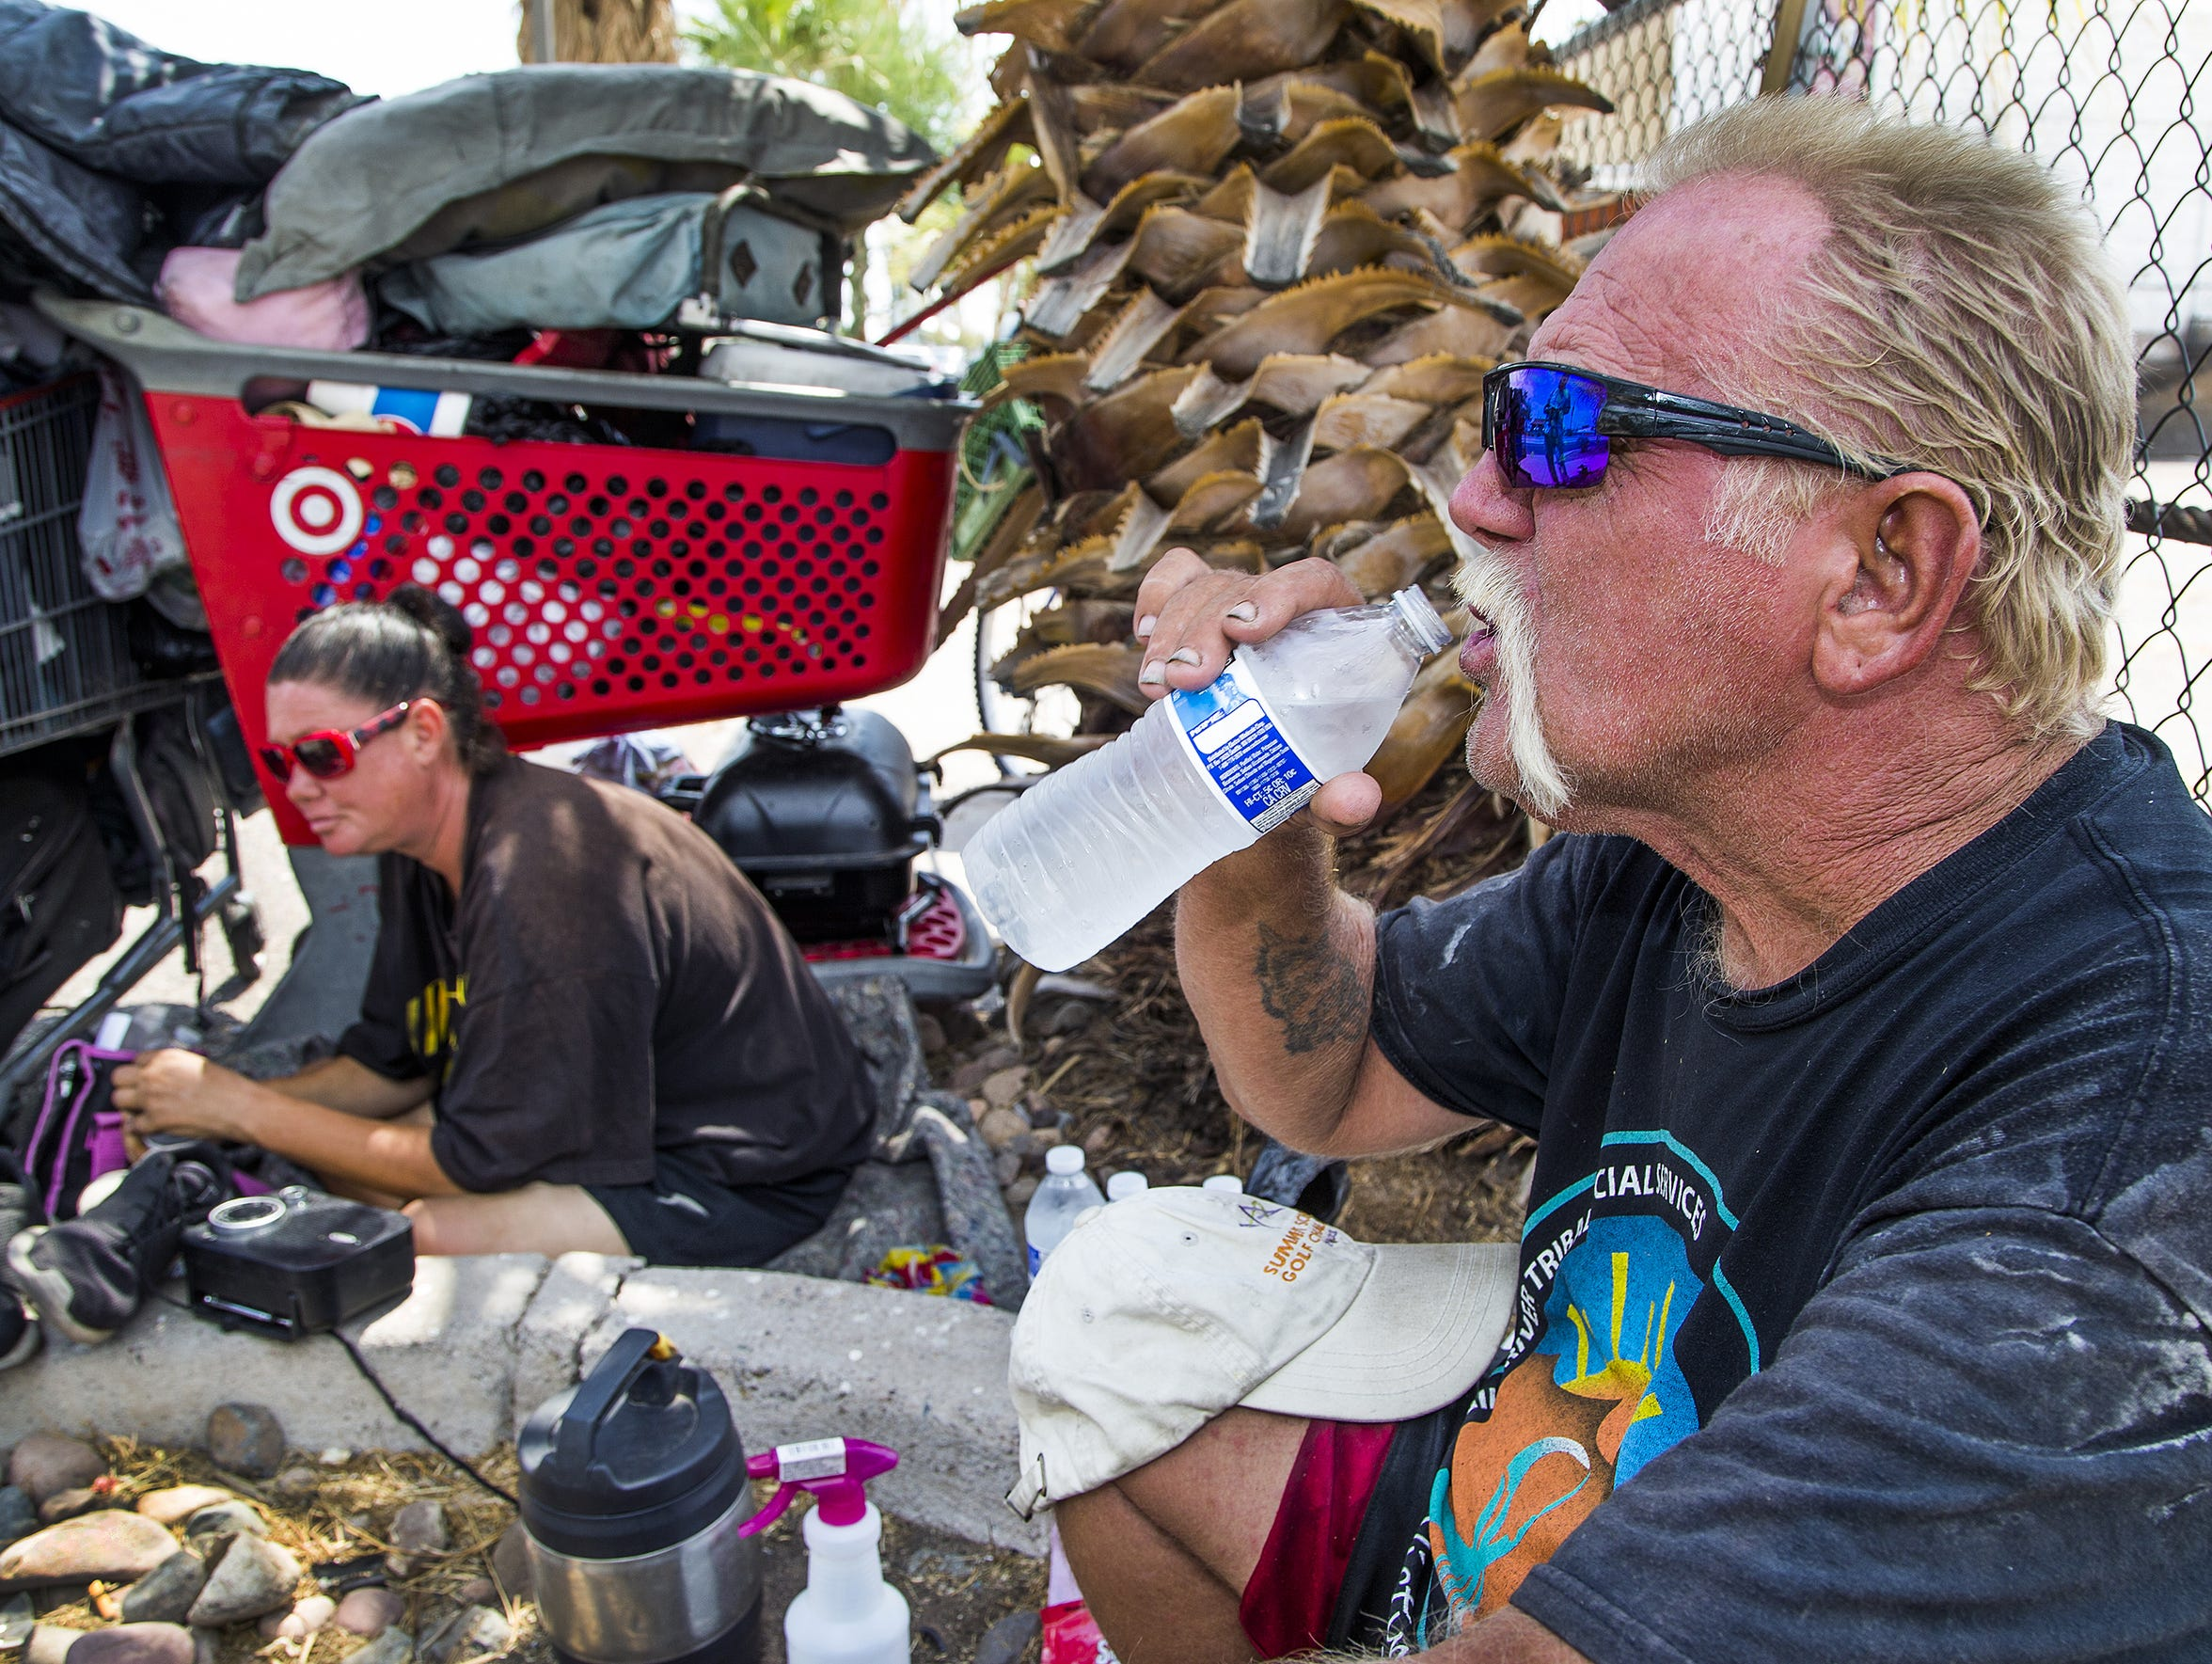 Whitey Hurst, 50, right, takes a swig from a cold bottle